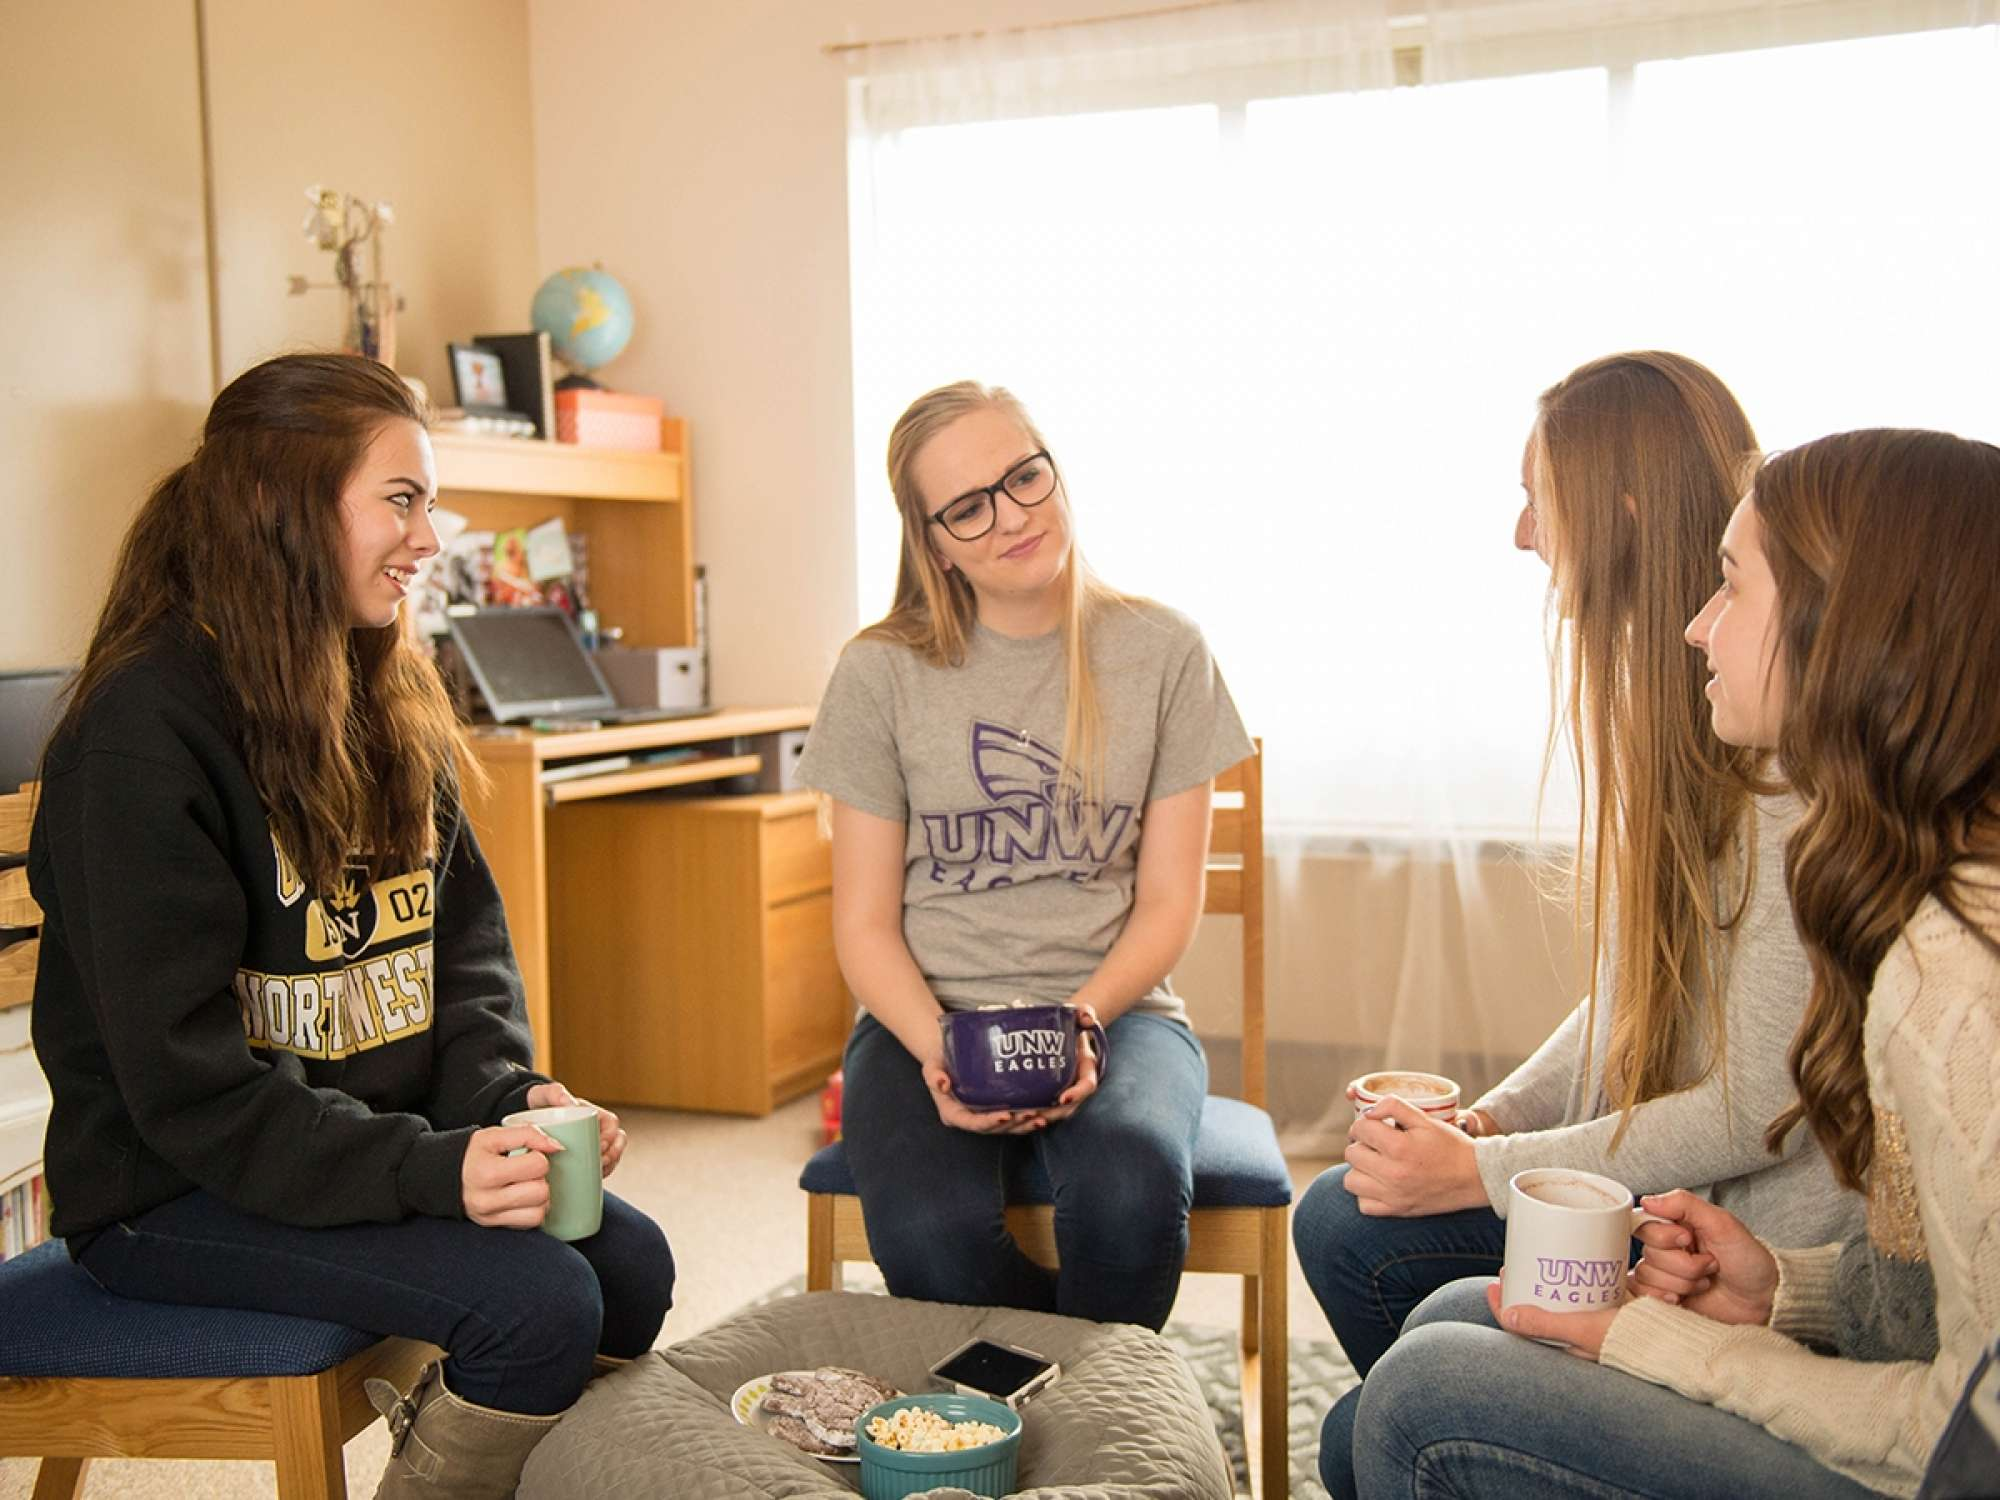 Four students in dorm room